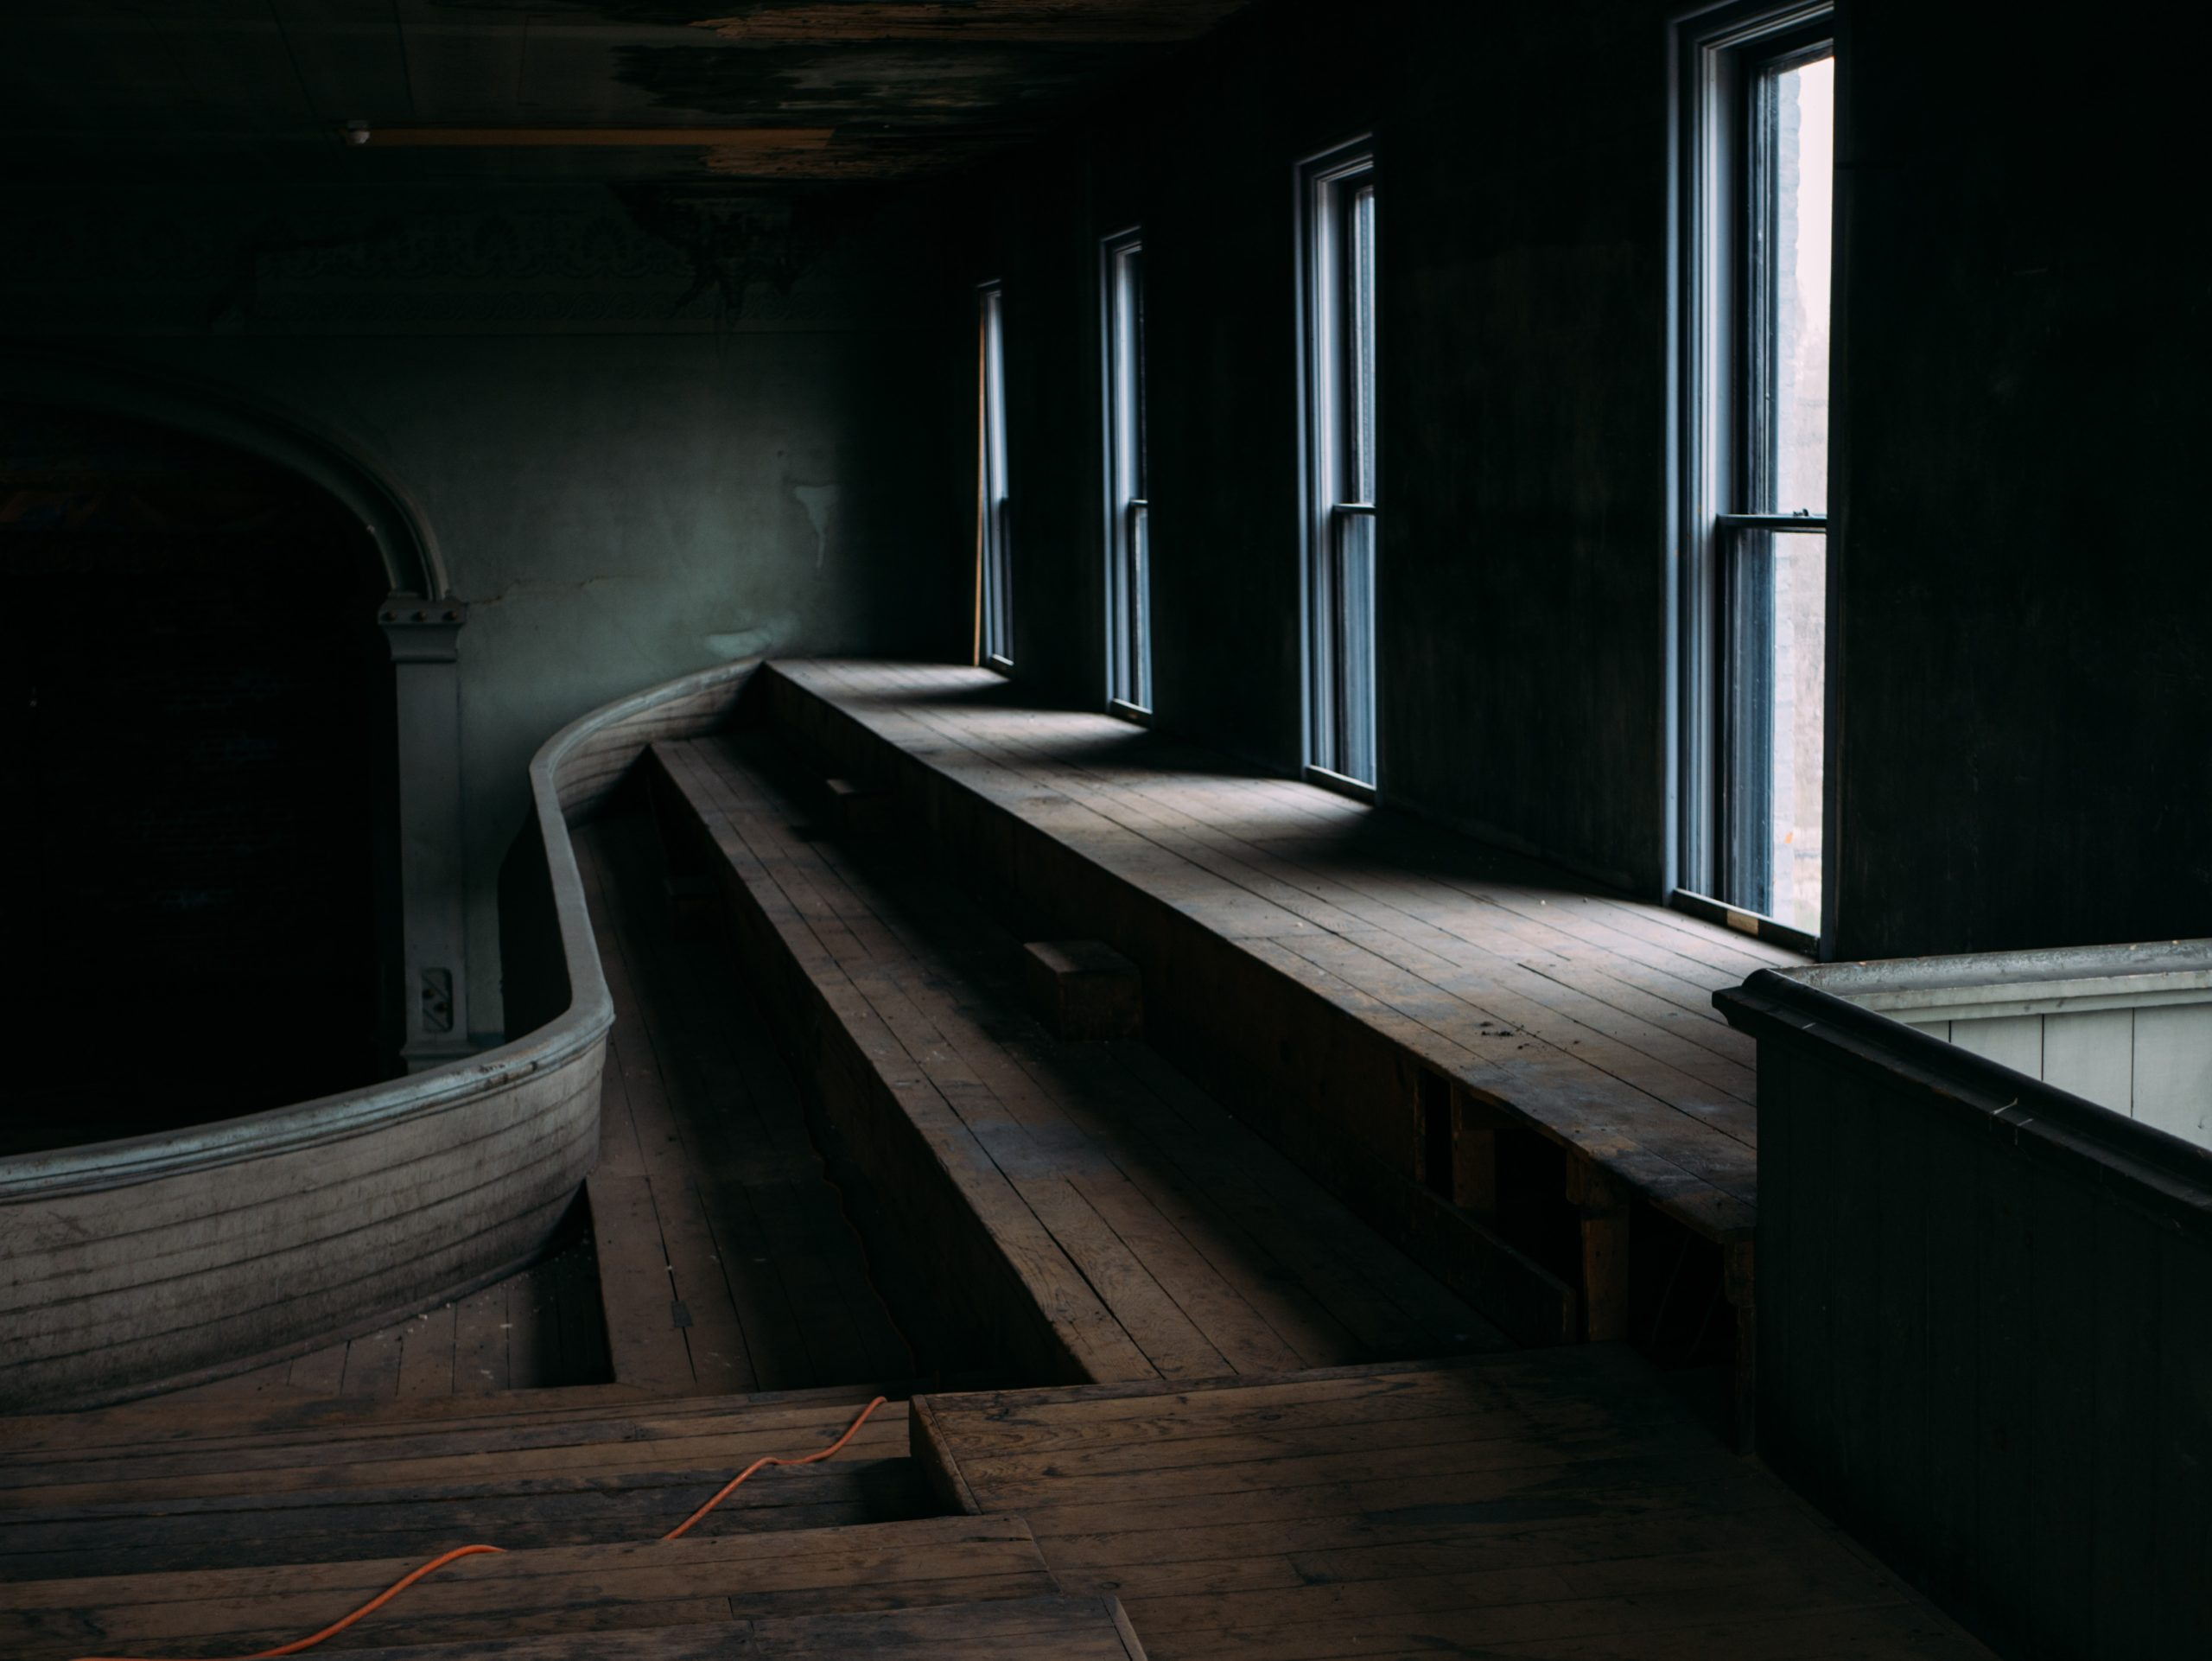 A dusty, dimly lit room filled with empty space and rough wooden floor boards. Along one wall there is a series of narrow windows, that let in very little light.